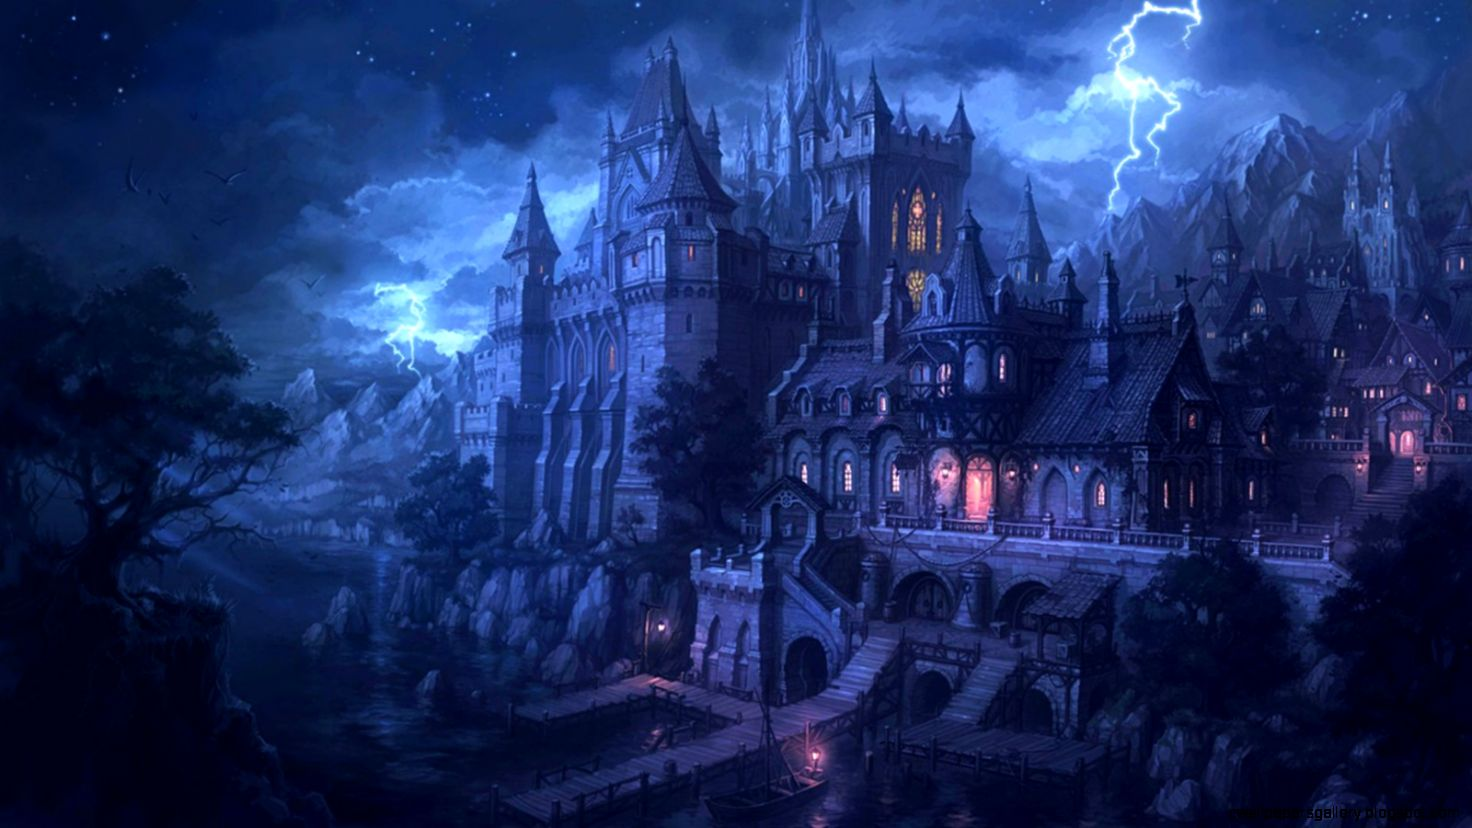 Fantasy Dark Castle Wallpaper